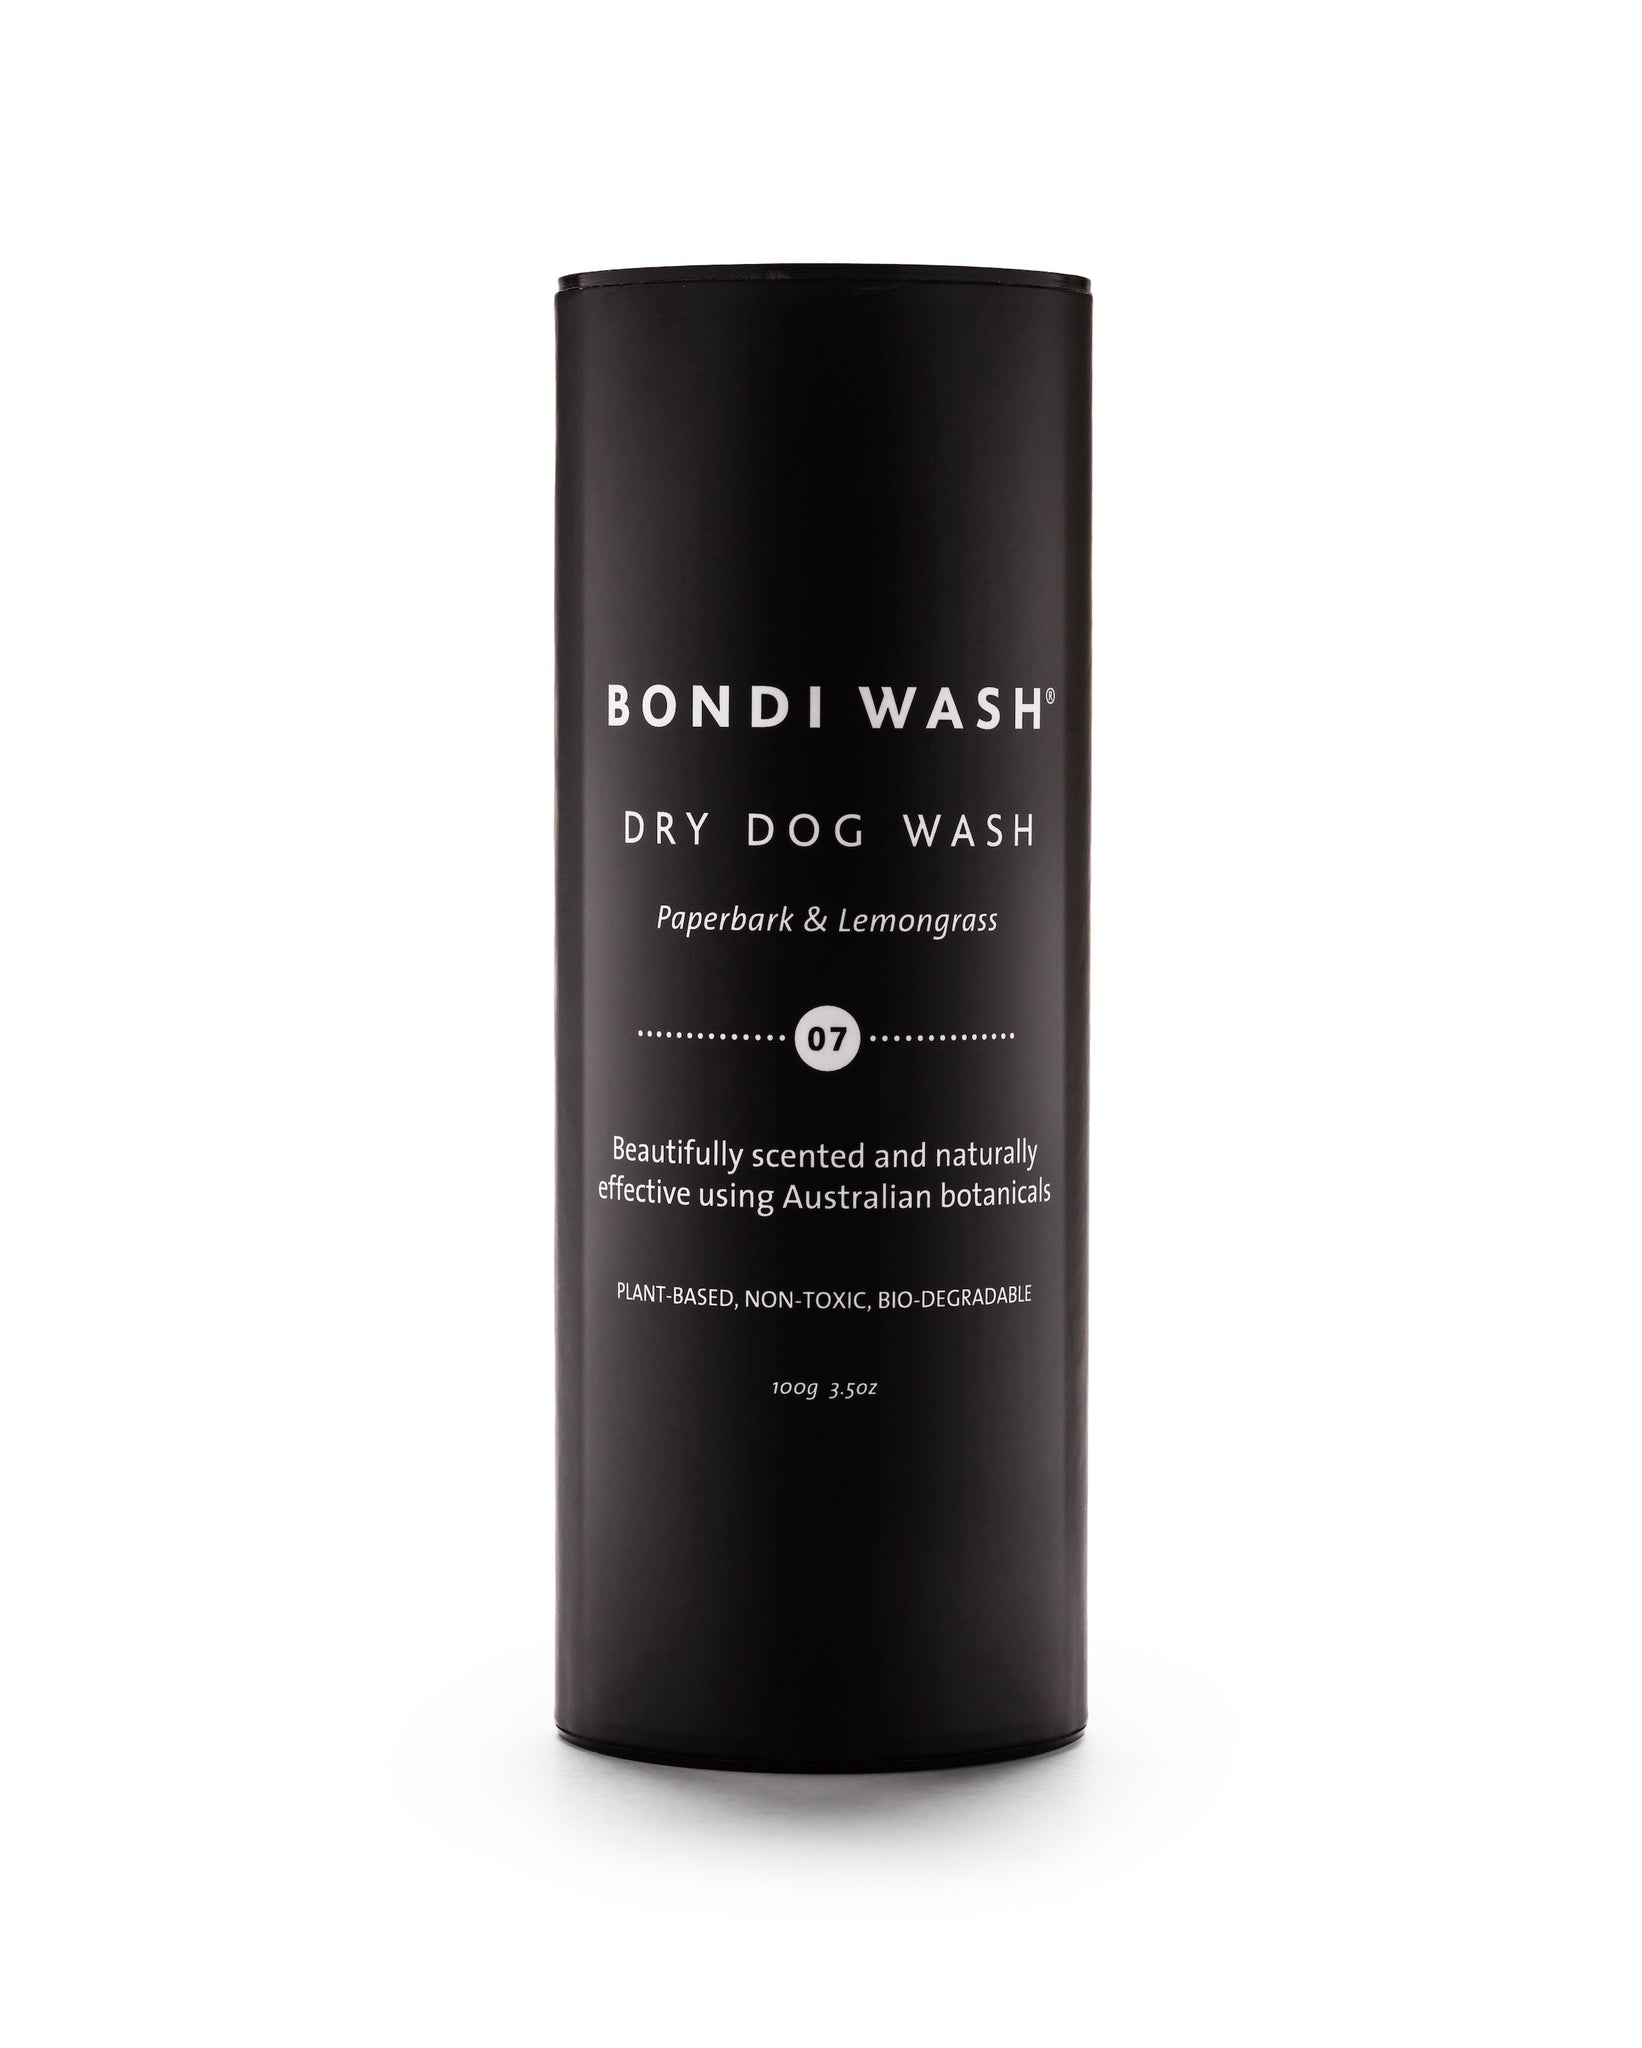 Bondi Wash, Bondi Wash Australia, Gemaakt met Australische Botanicals, Nourished Nederland & Bondi Wash, Dog Wash, Natural Dog Wash, Dog Conditioner, Natural Dog Conditioner, Kennel Spray, dry dog shampoo, droogshampoo